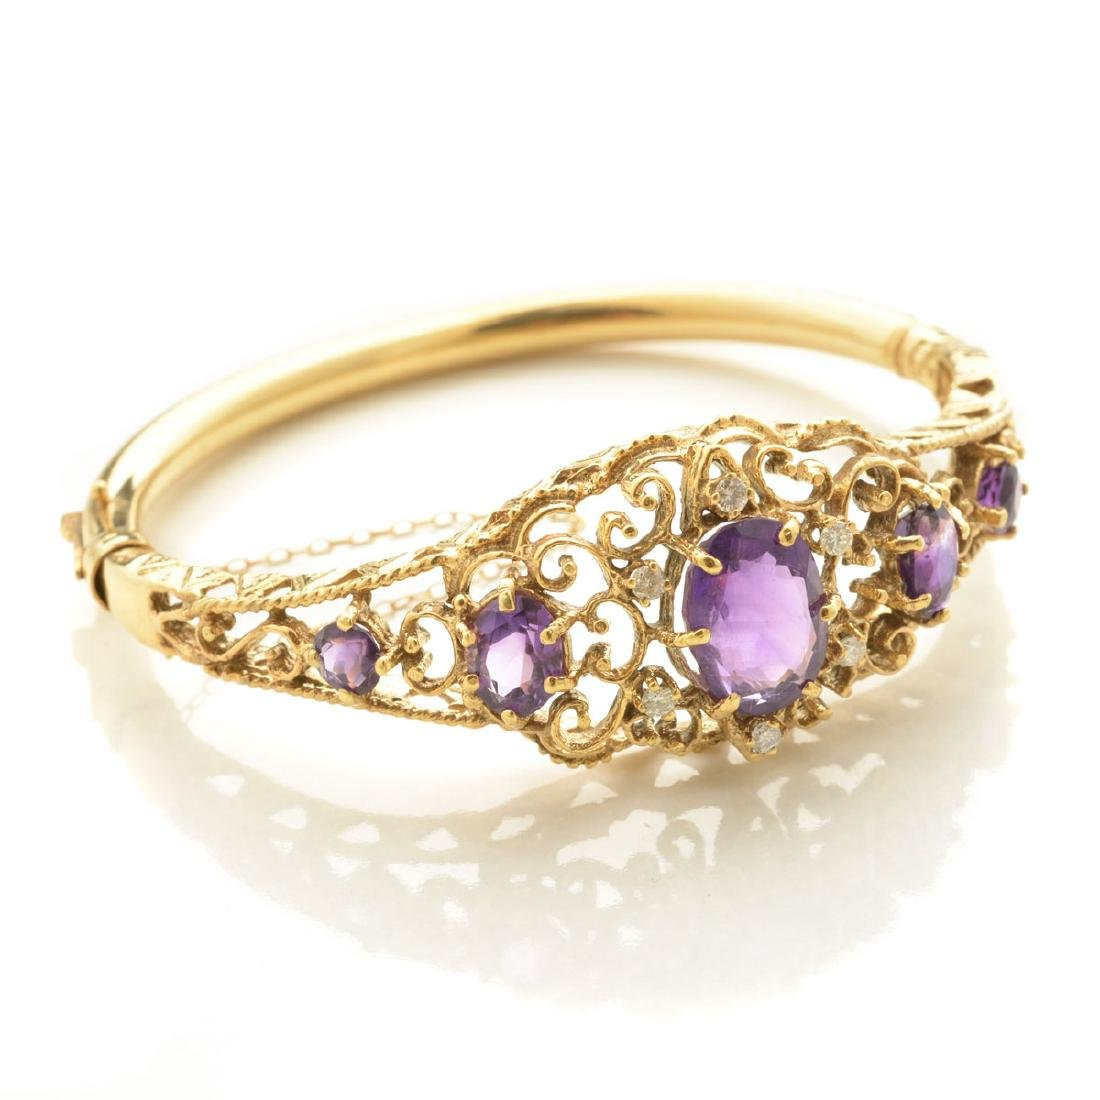 Amethyst, Diamond, 14k Yellow Gold Bracelet.